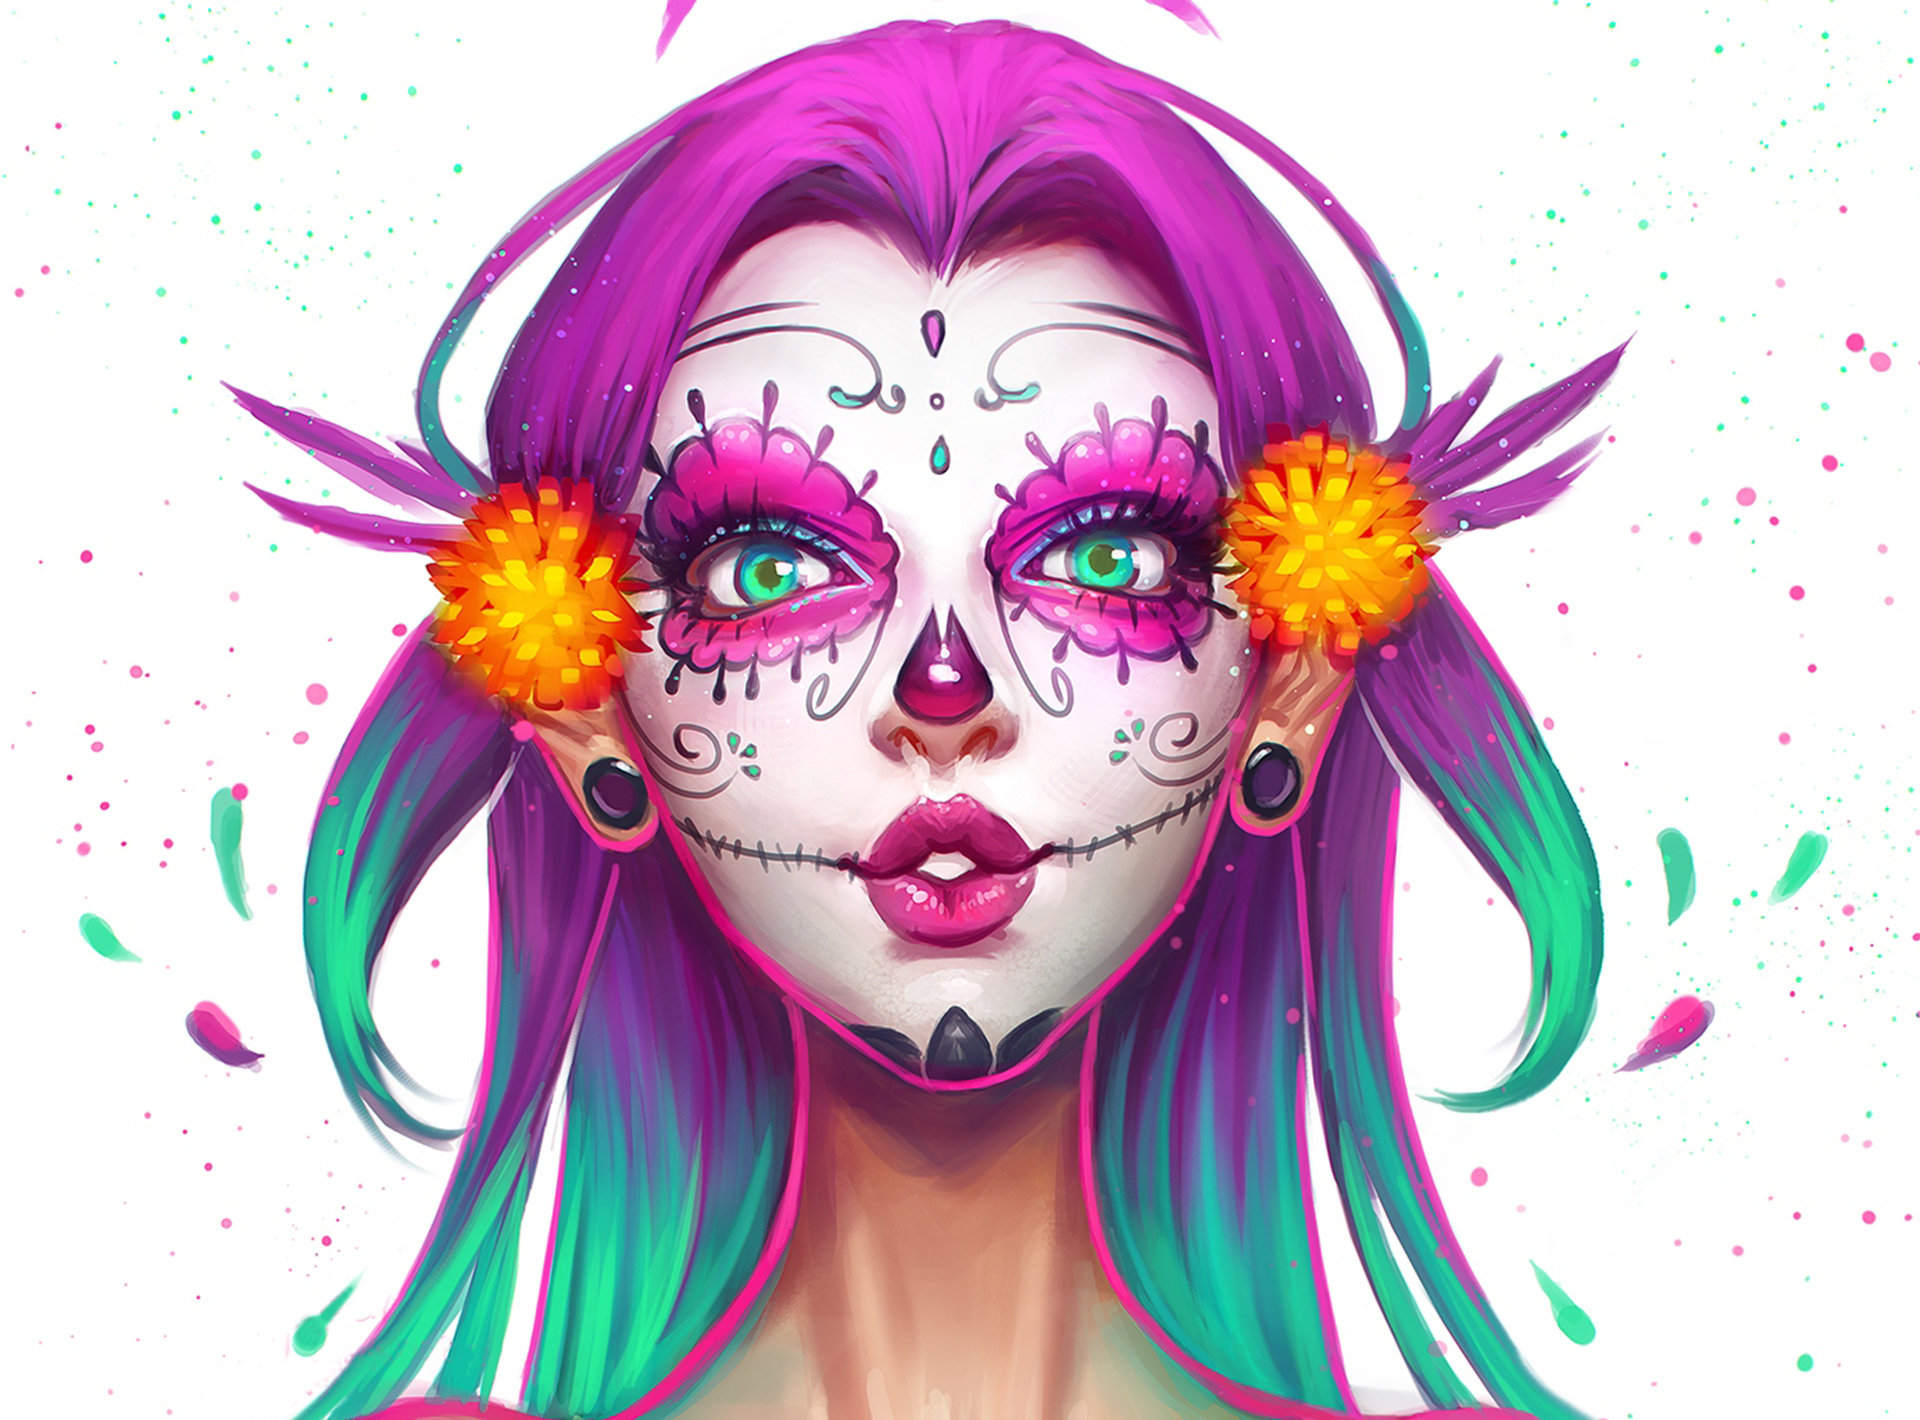 beauty-girl-face-make-up-skull-painting-desktop-background-hd-1920x1080-style-blue-and-p-wallpaper-wpc9002737